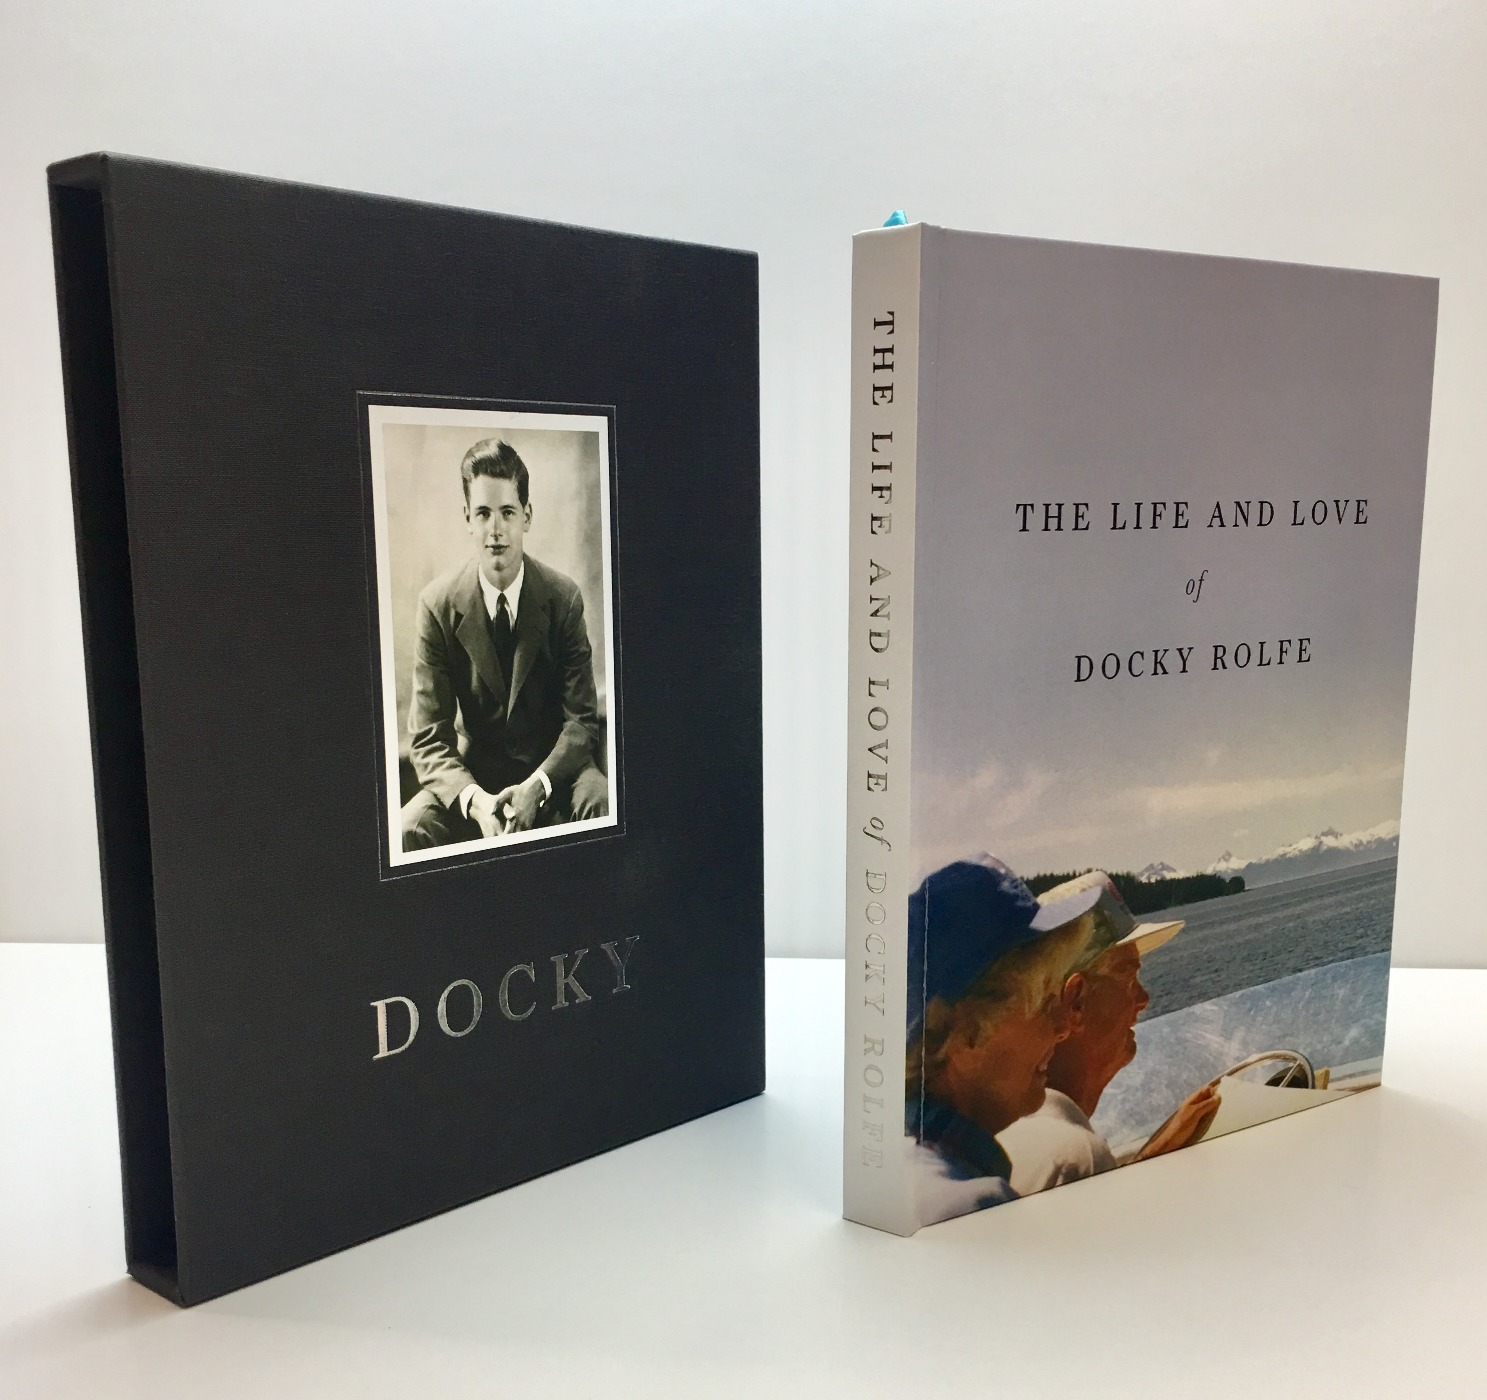 Slipcase and cover